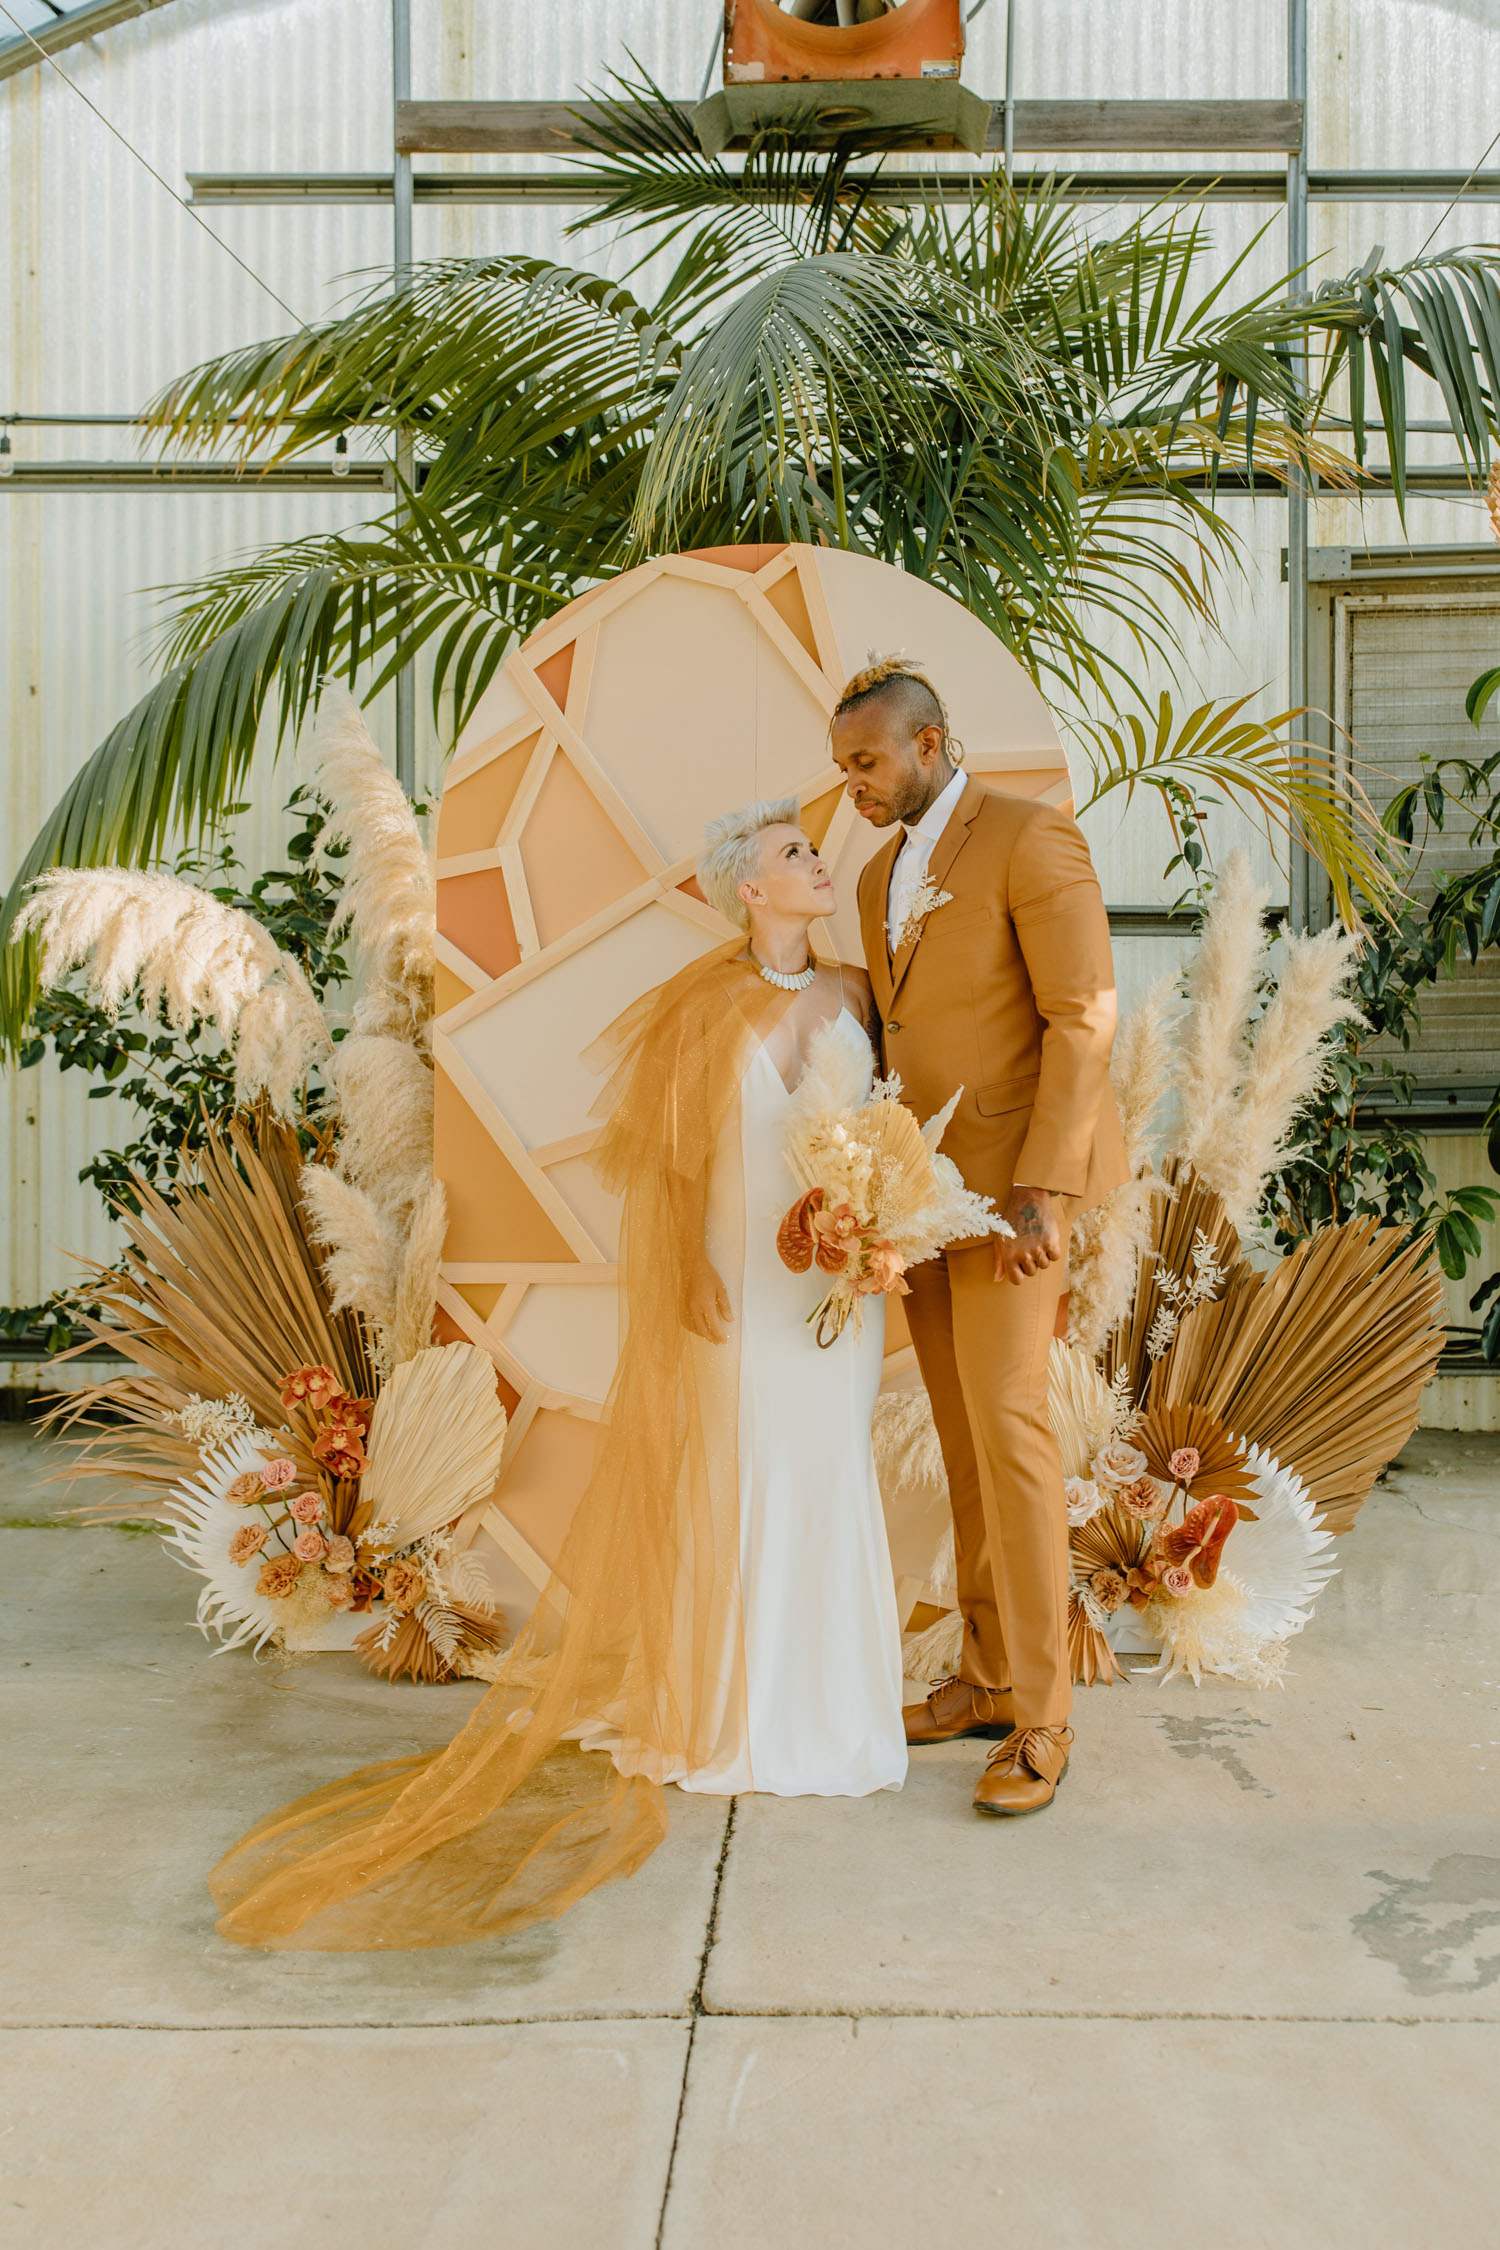 Spectacular Spring Wedding Colors at This Stunning Tulum- Inspired Greenhouse